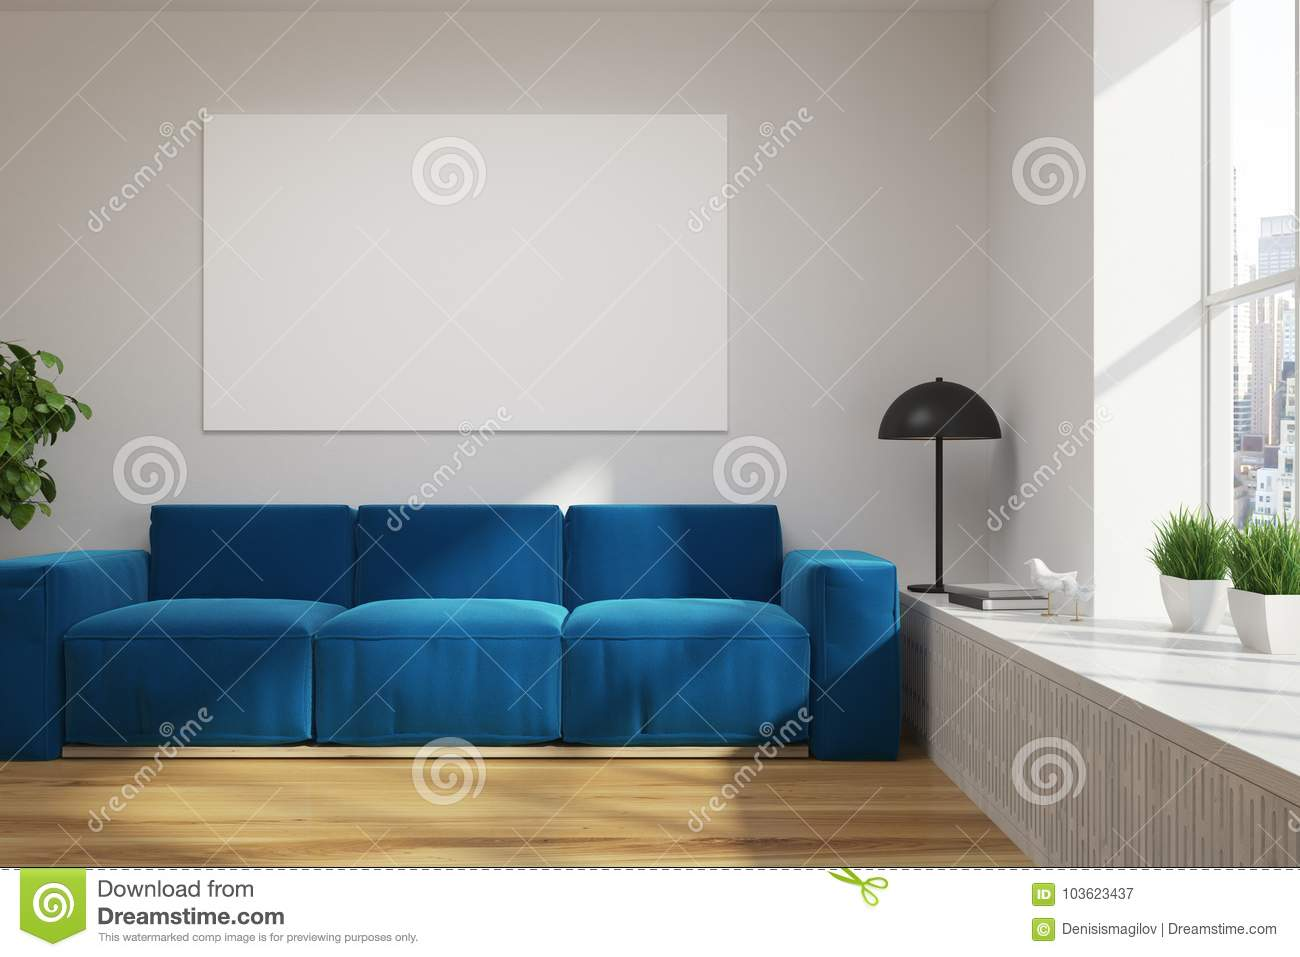 white loft living room blue sofa poster stock illustration